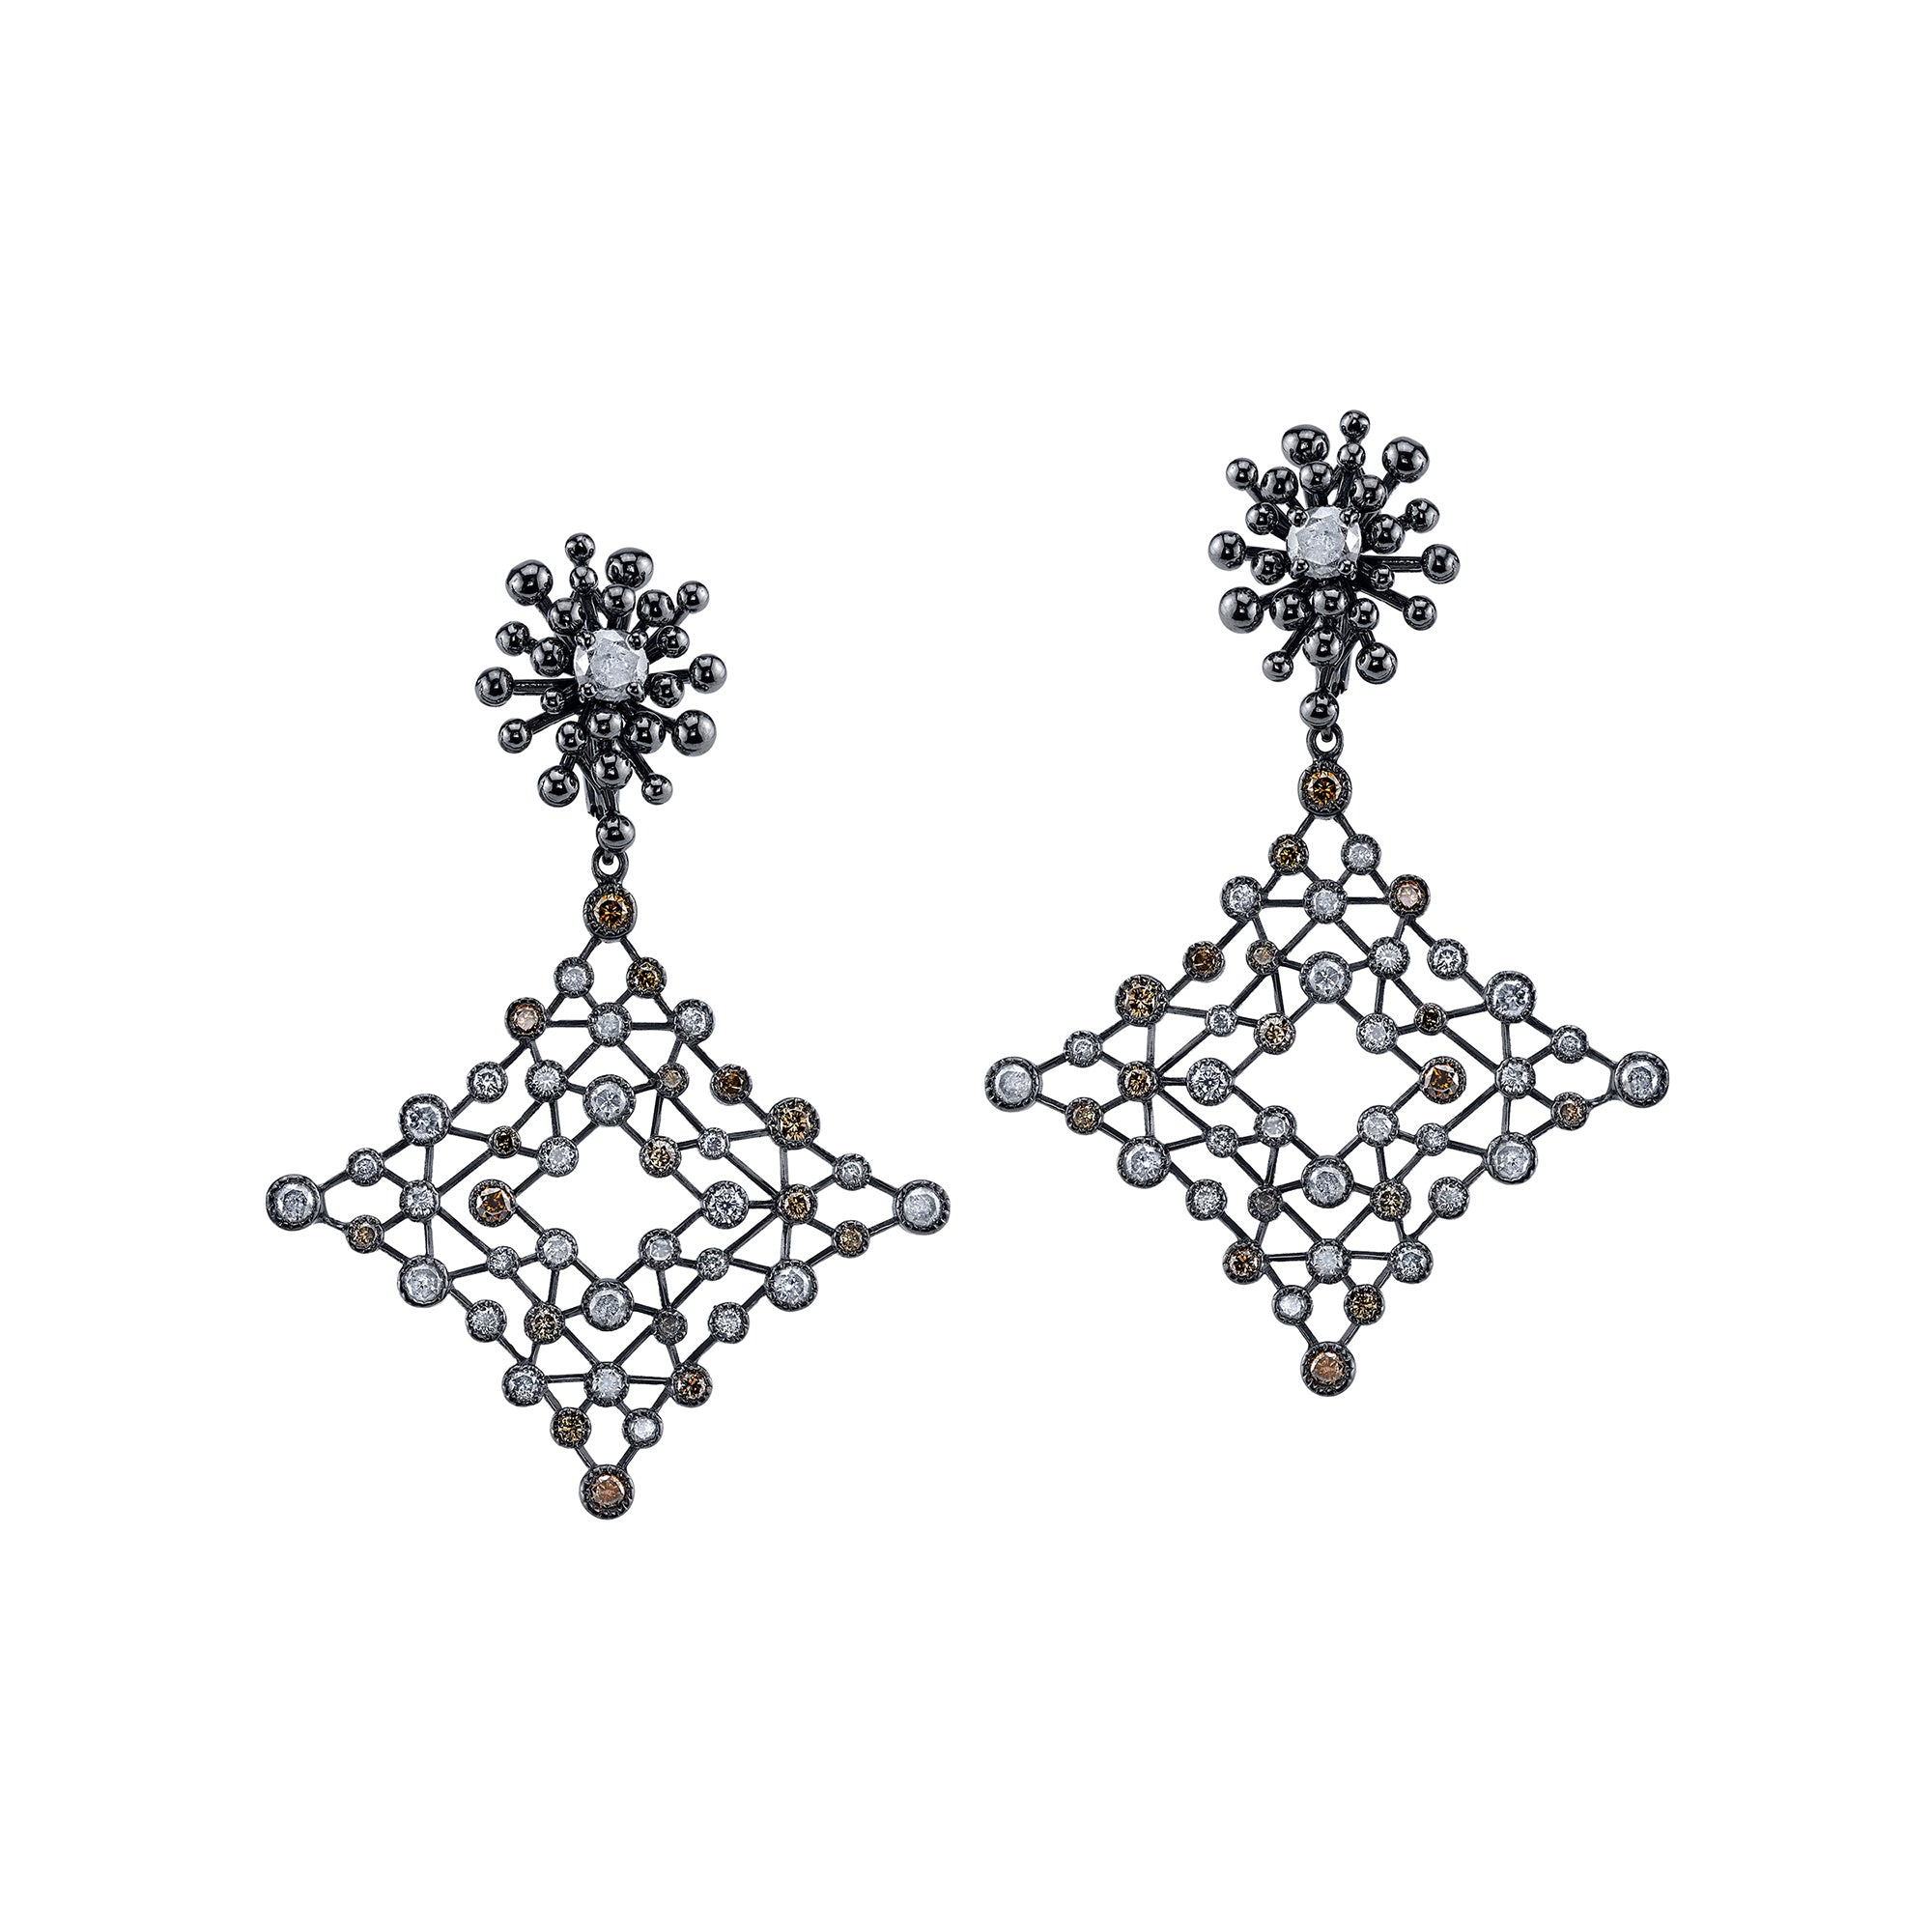 Small Nocturne Earrings by VRAM for Broken English Jewelry